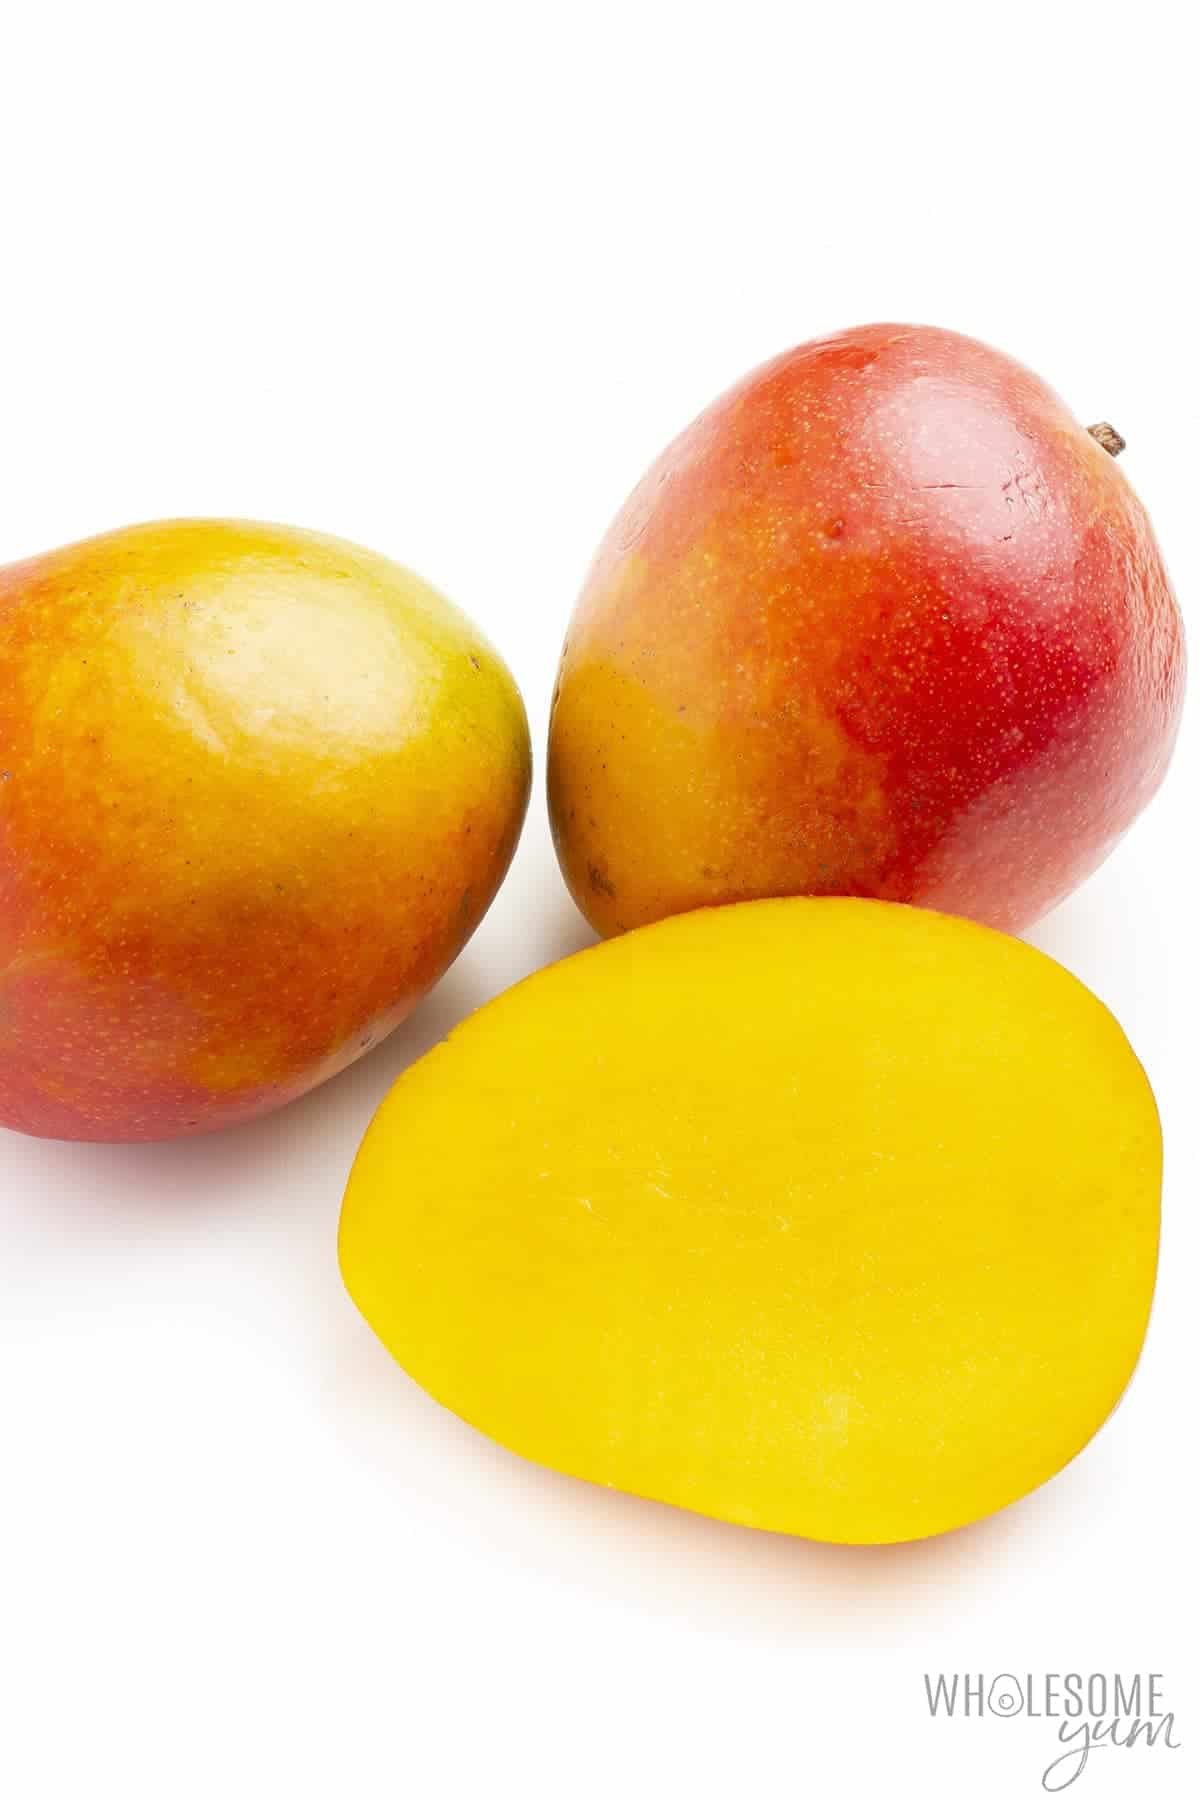 Carbs In Mango: Are Mangoes Keto?